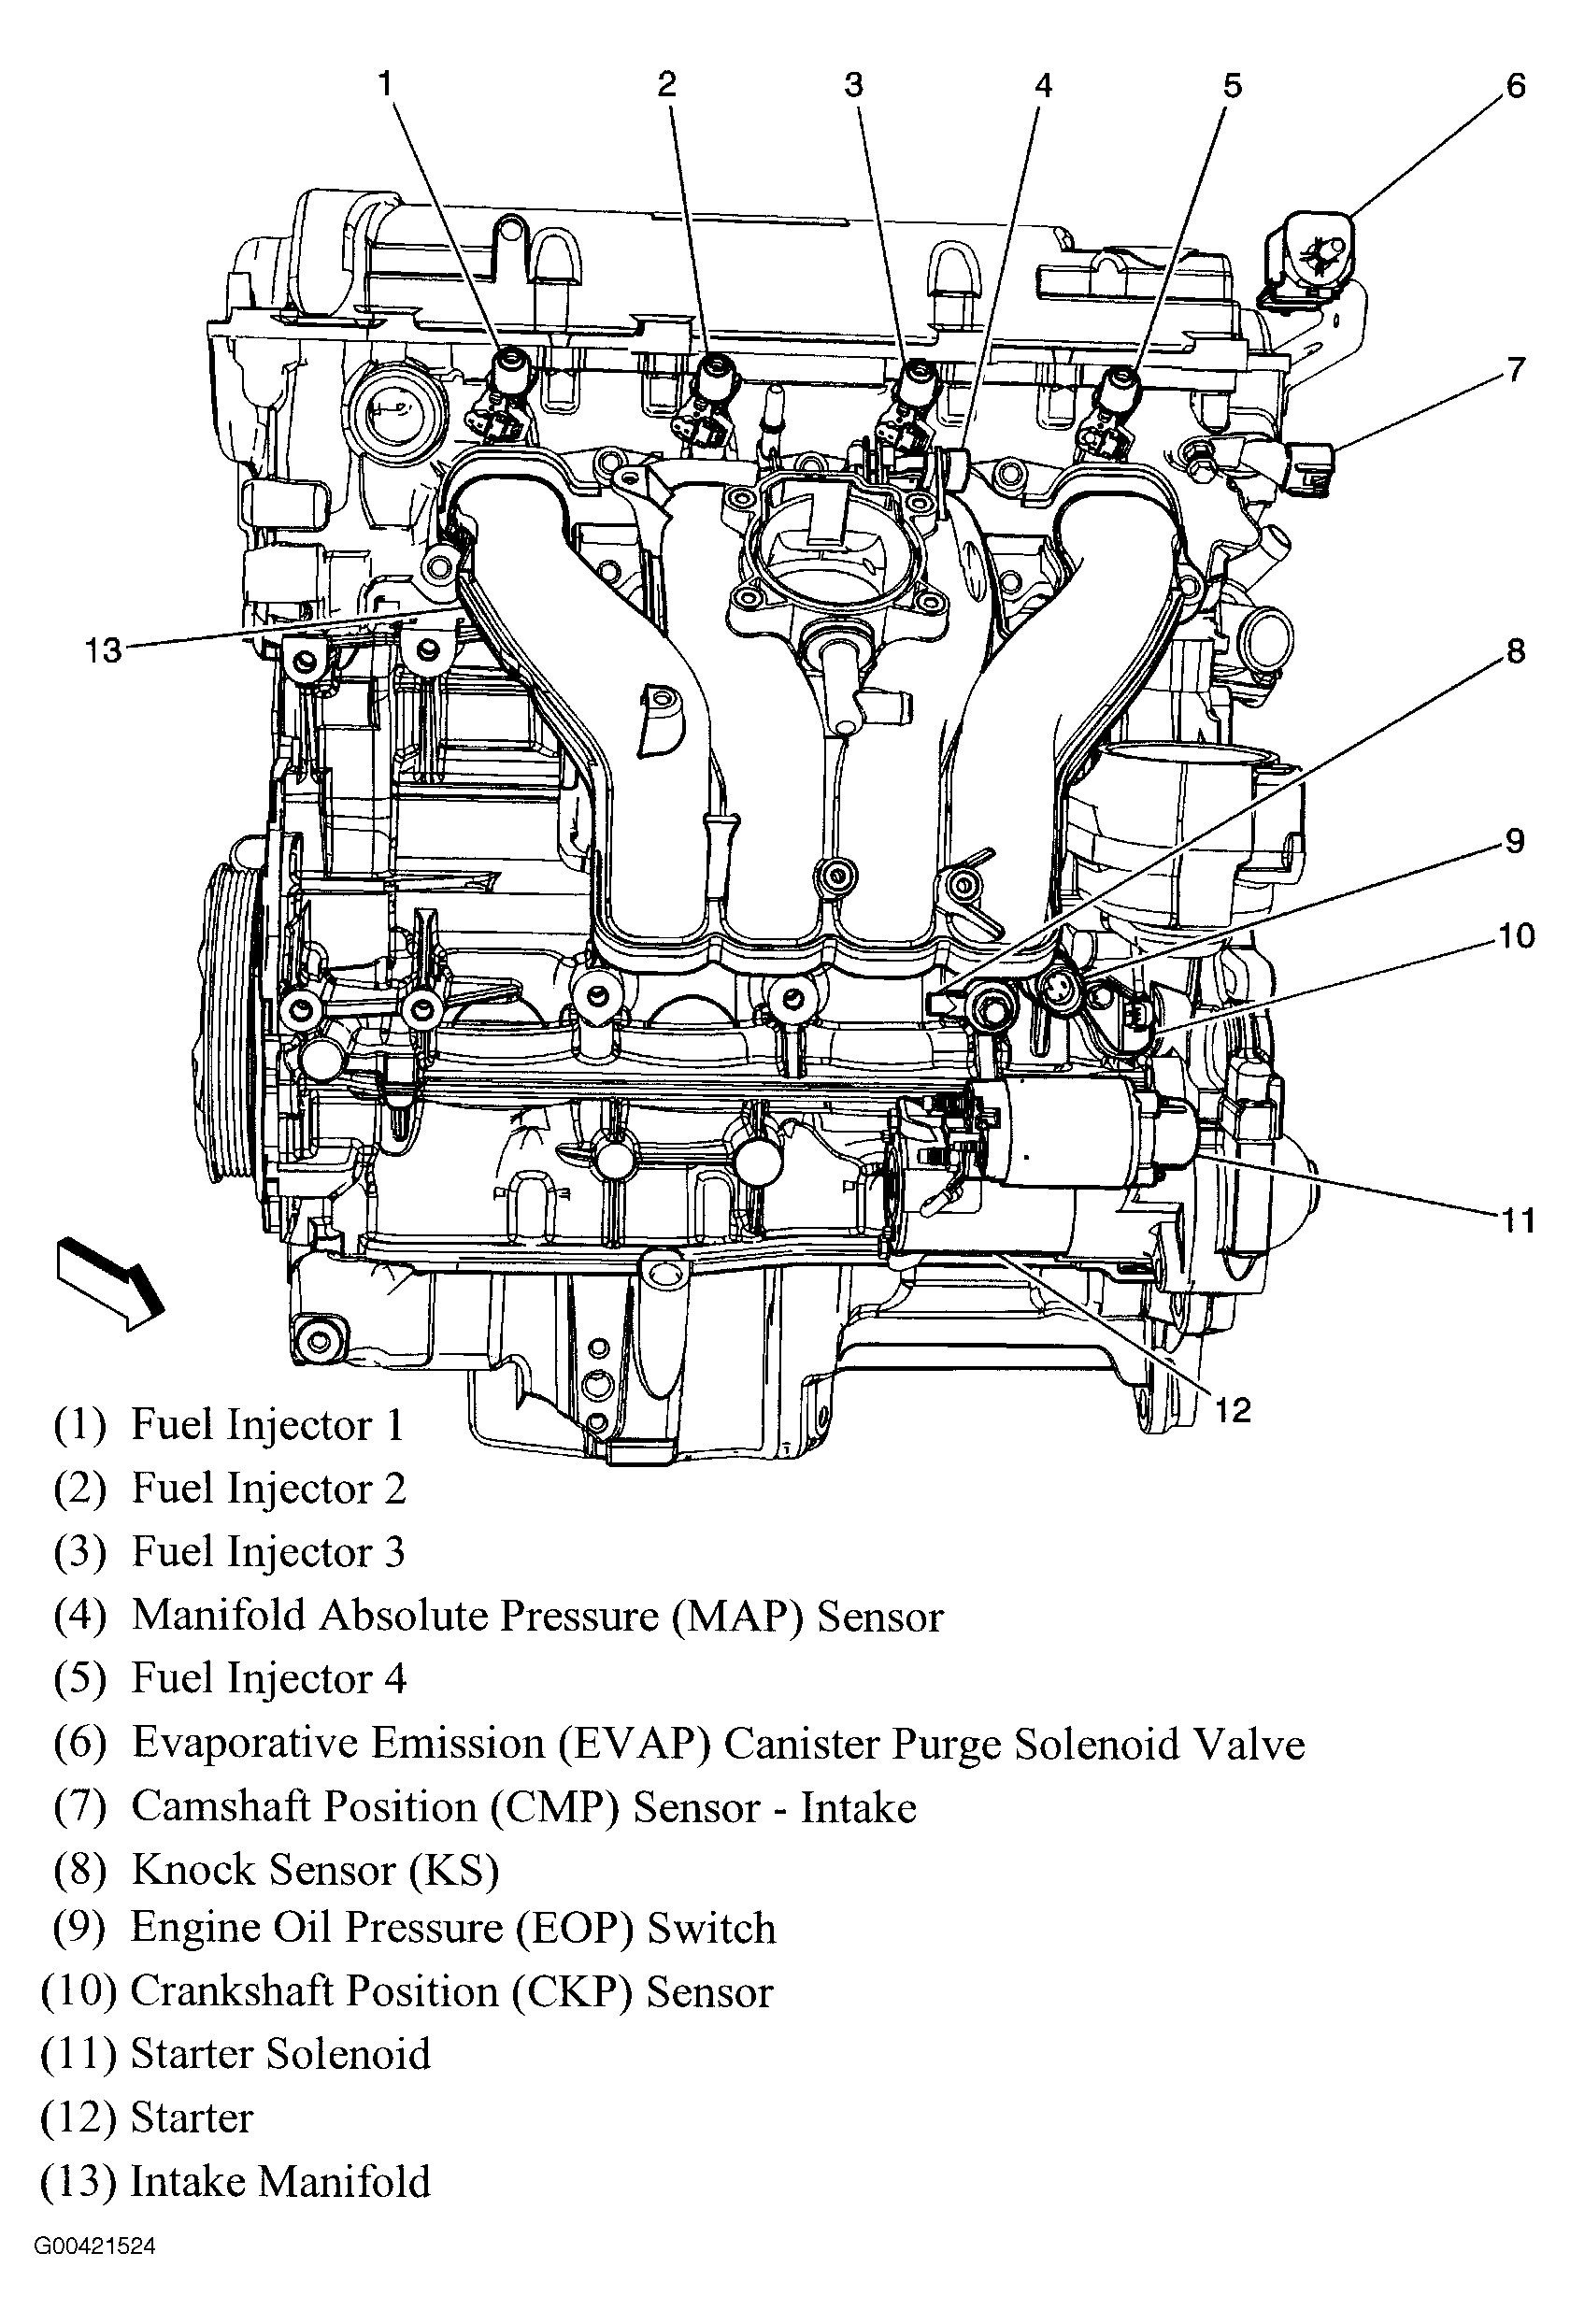 diagram 2 2 gm engine wiring diagram electricity basics 101 u2022 rh  agarwalexports co Chevy S10 2.2L Engine Diagram 2.2 Liter Engine Diagram